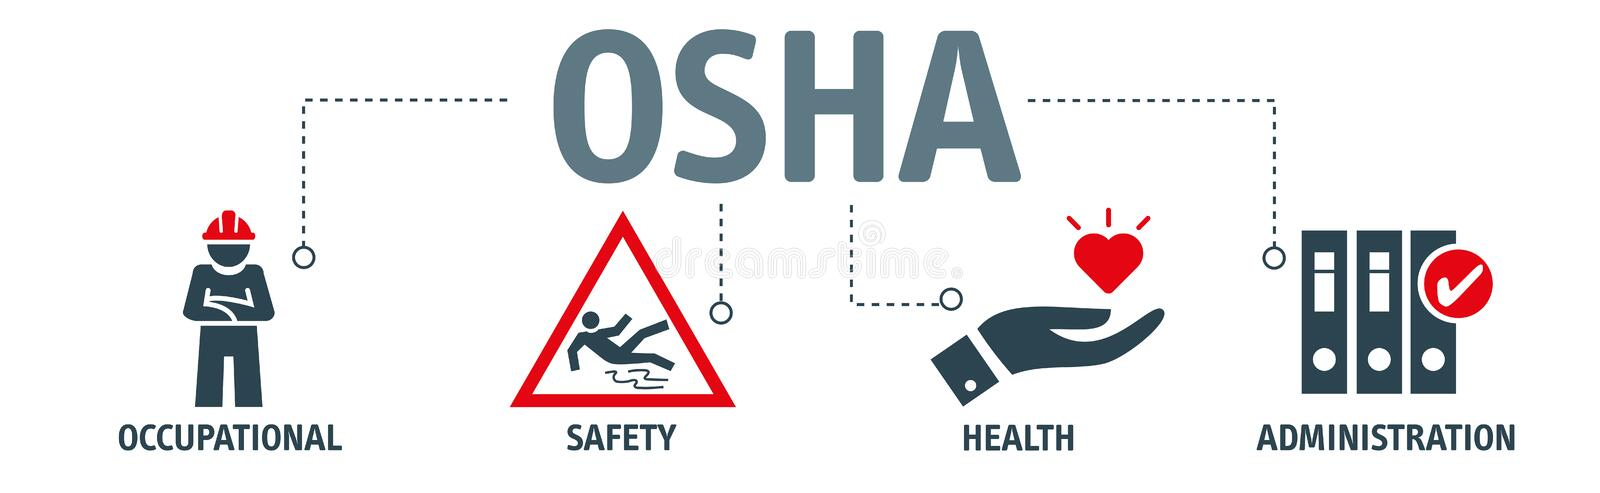 OSHA - Bandera de la Occupational Safety and Health Administration libre illustration